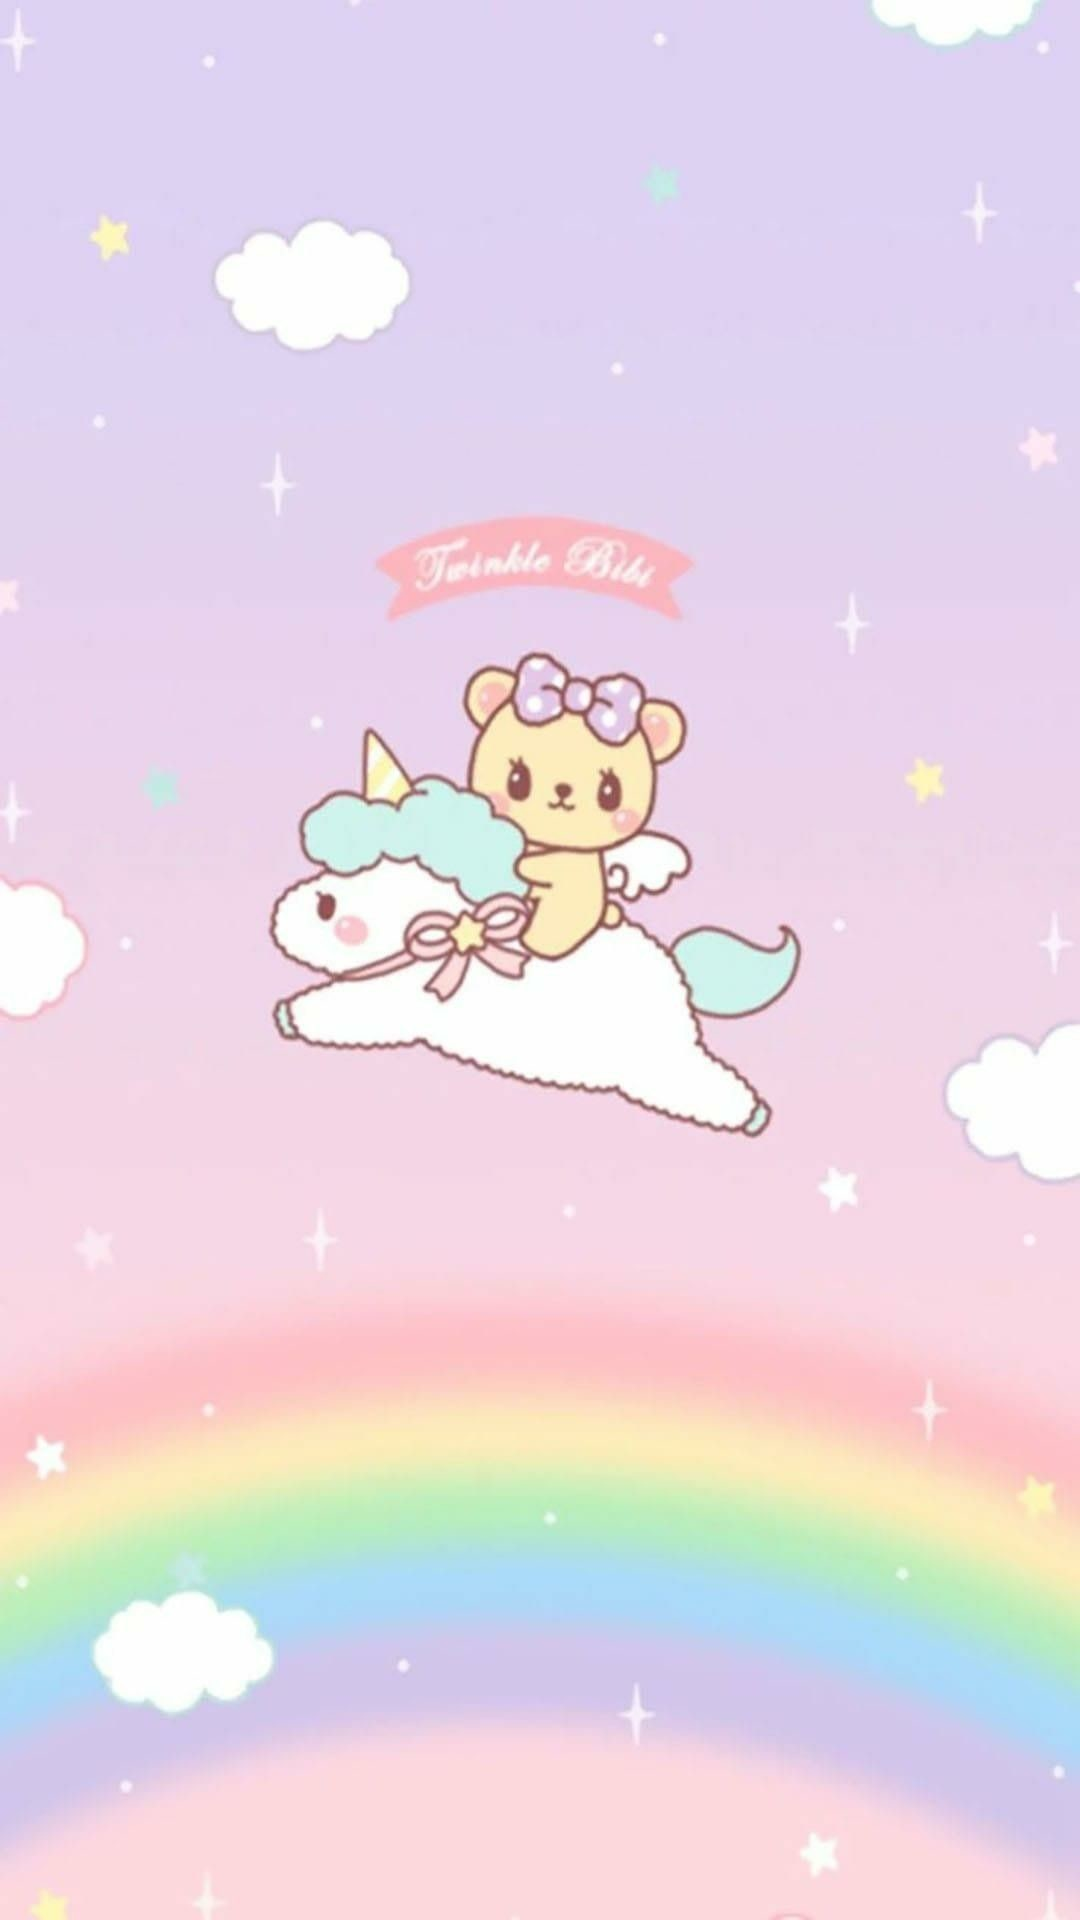 Res: 1080x1920, Kawaii Wallpaper, Iphone Wallpapers, Unicorns, Phone Cases, Fatal  Attraction, Wall Papers, Patterns, Backgrounds, Paper